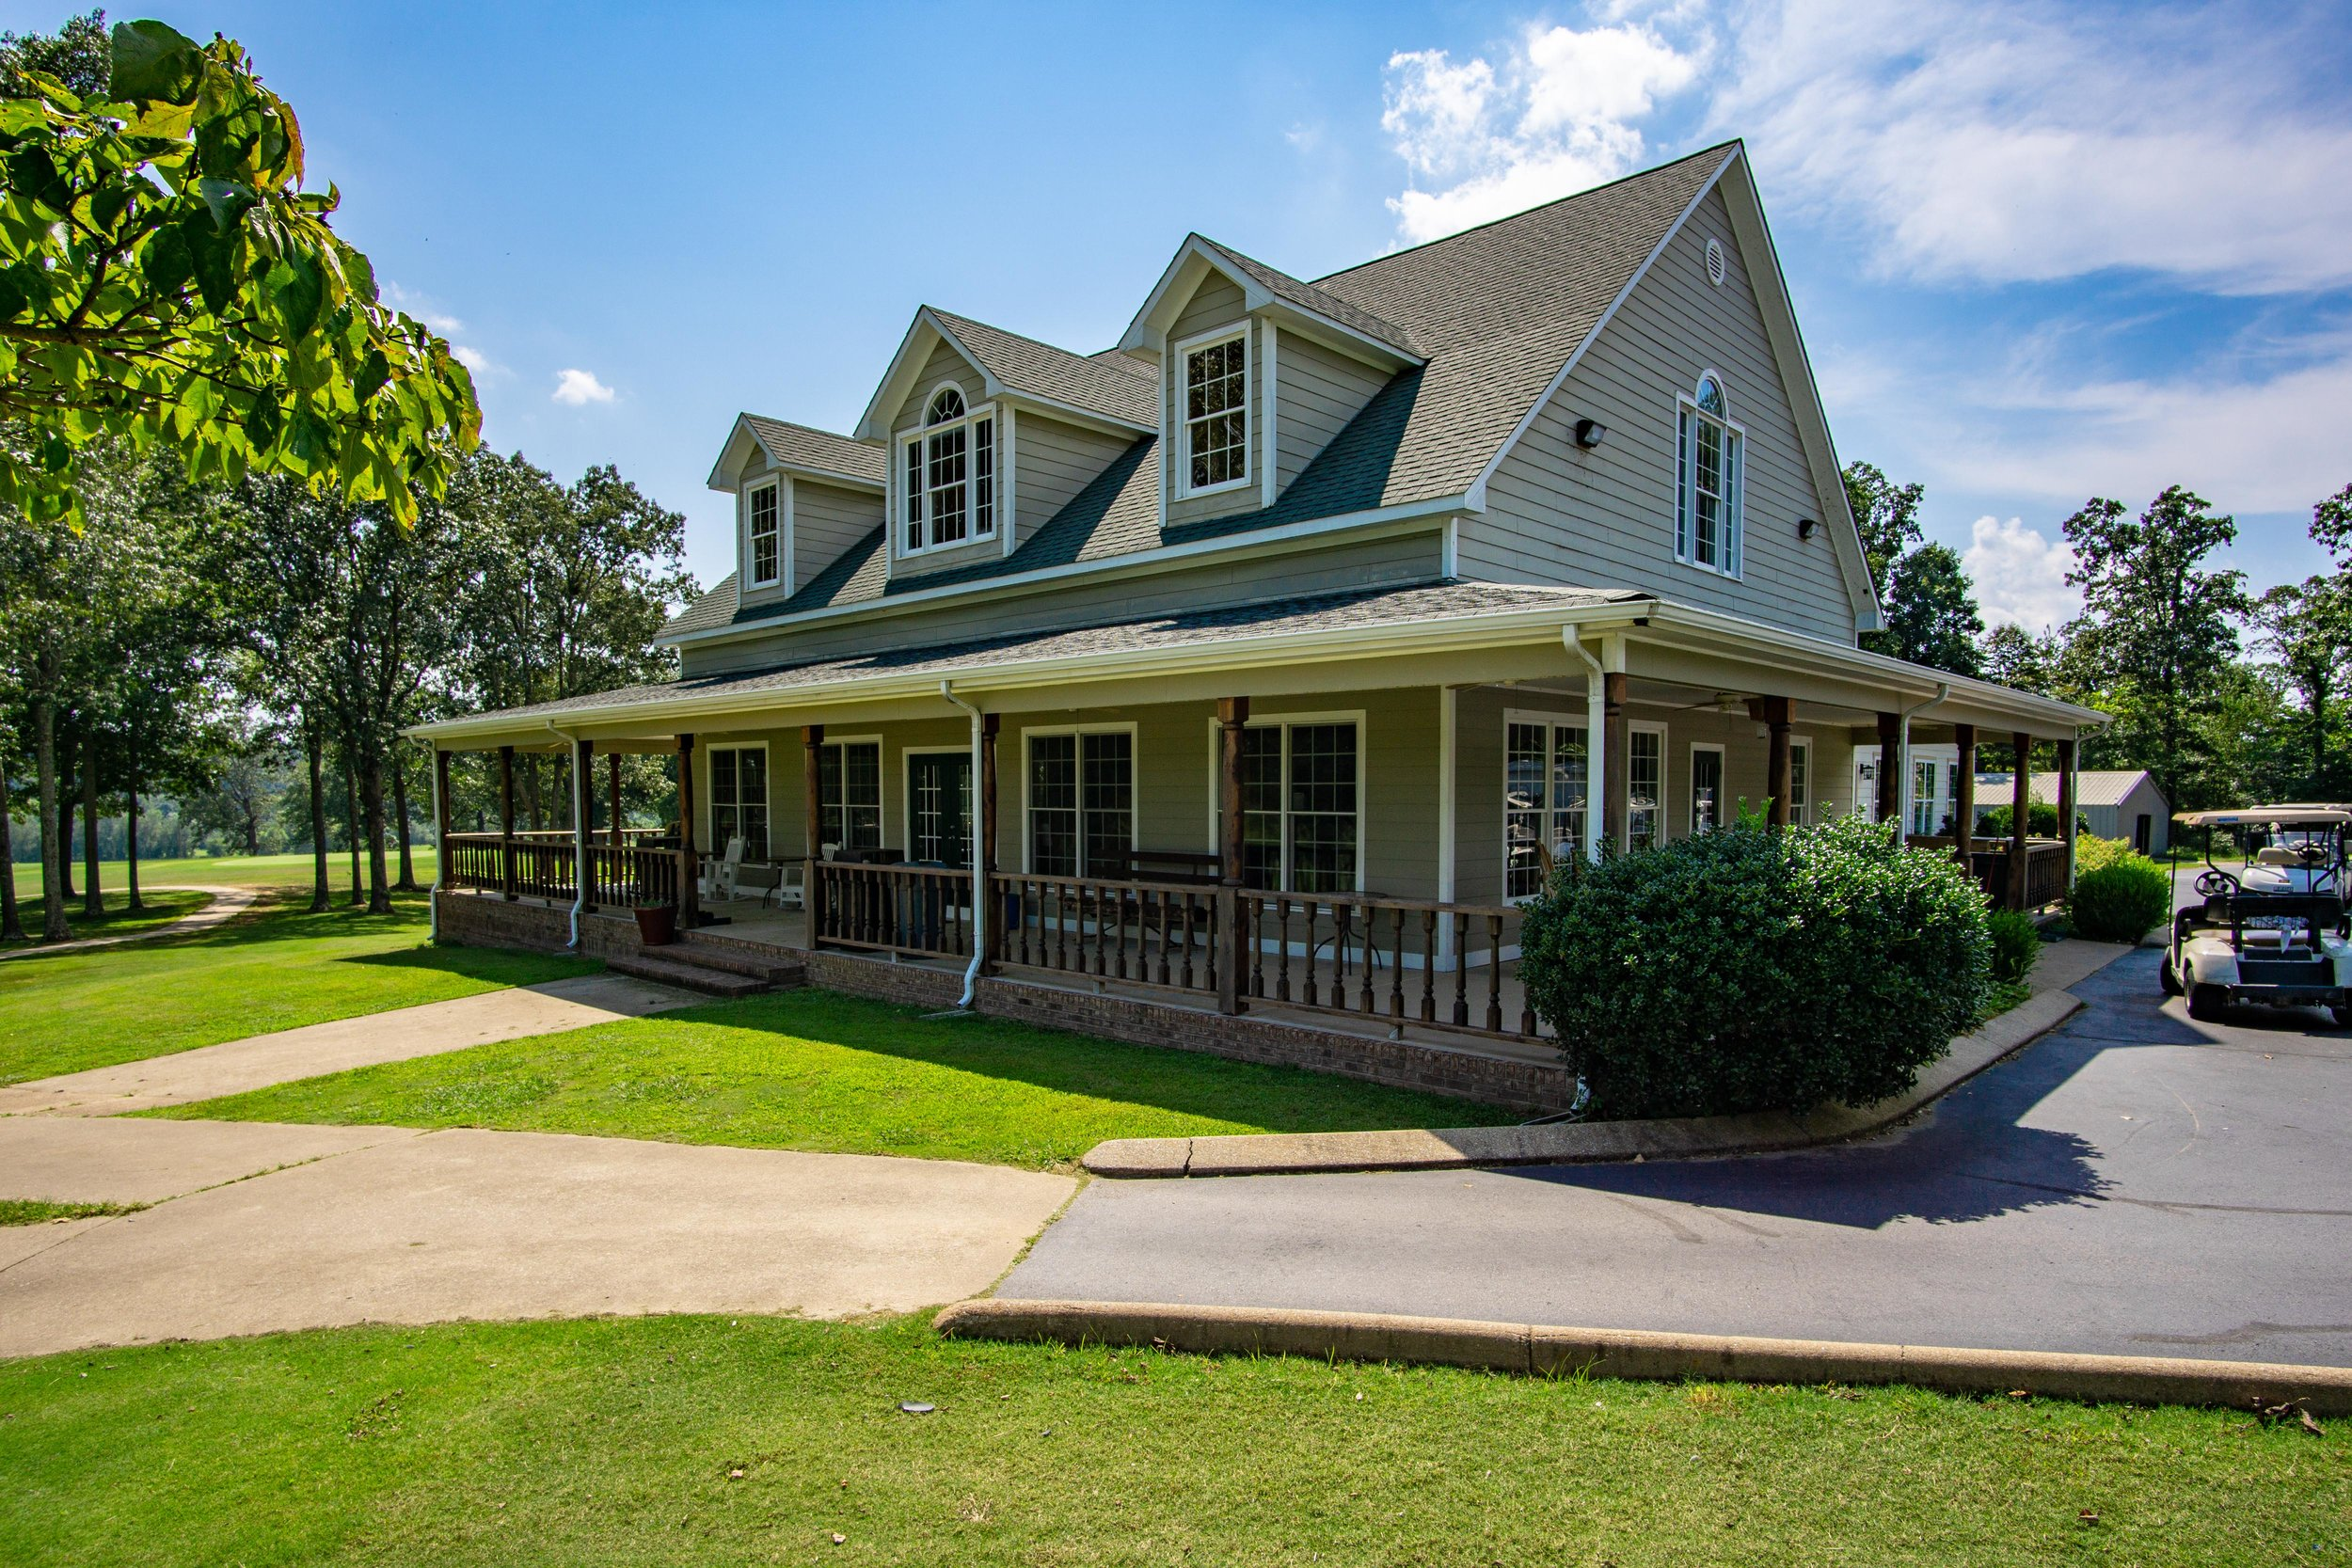 Dixie Oaks Golf Club Summertown TN Real Estate Photographer Pro -8.jpg